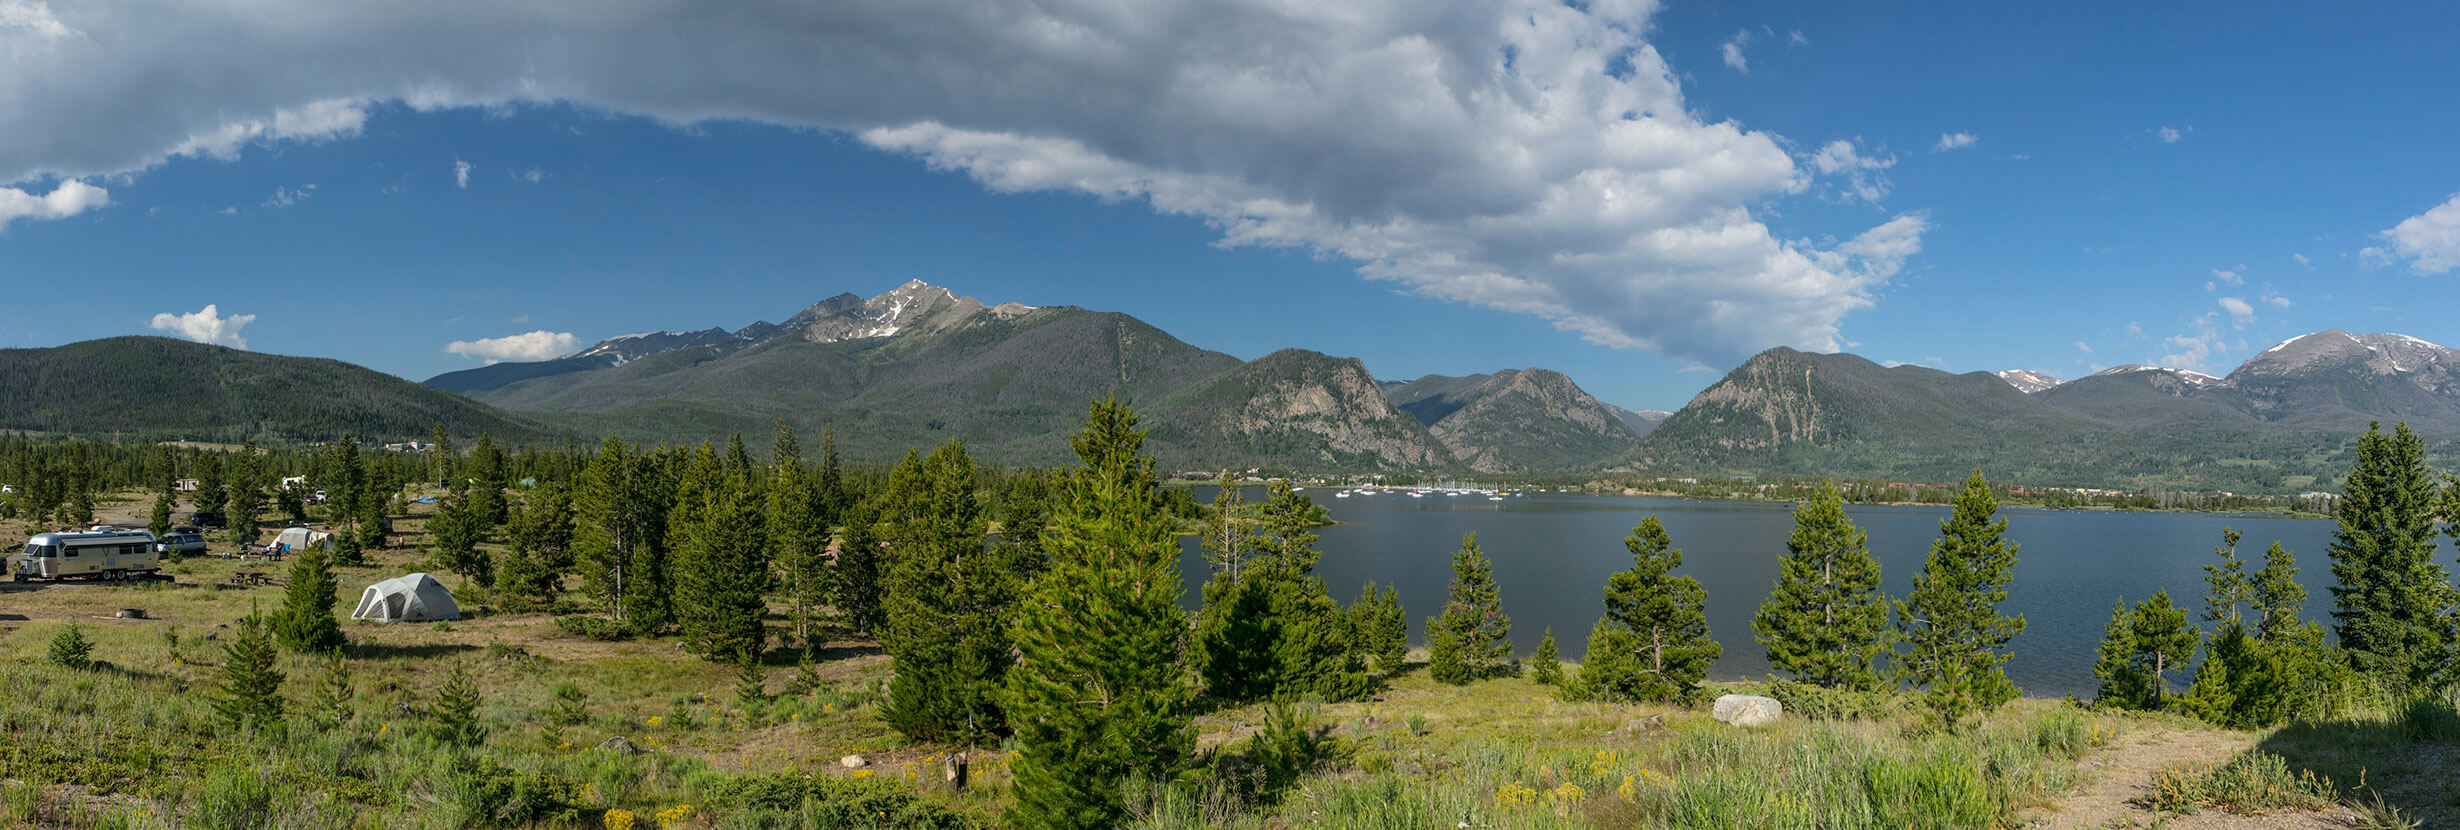 Panoramic view of a campground, Lake Dillon, and the Tenmile Range.